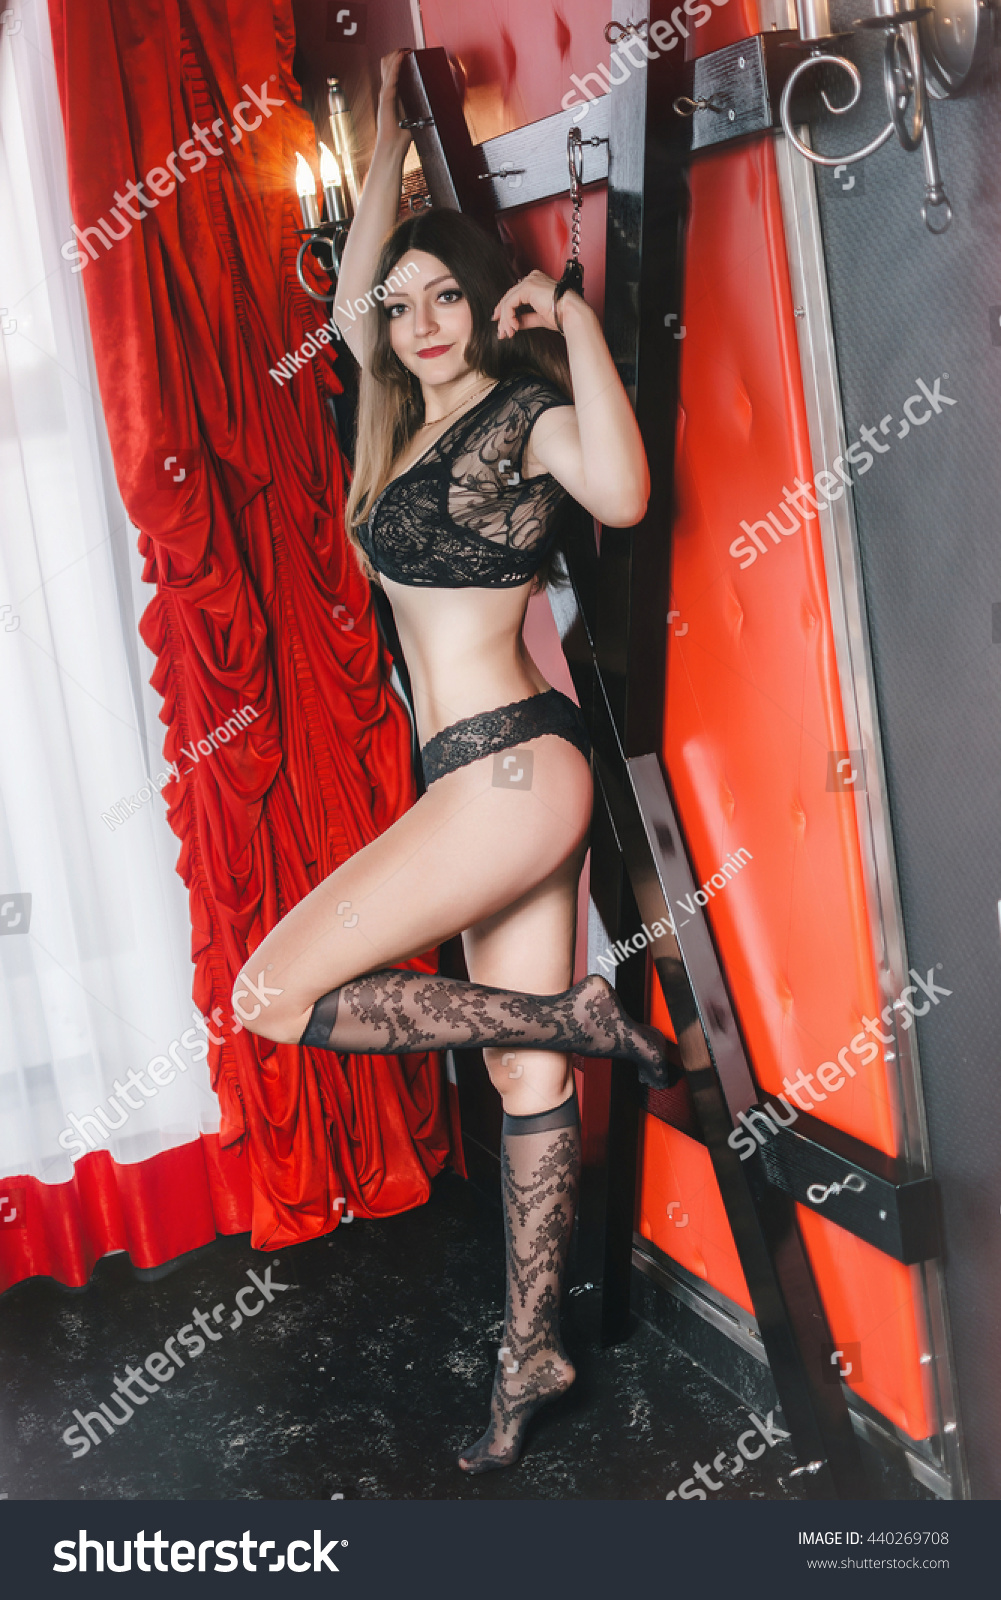 sexual women, young girl in handcuffs in bdsm room, role-playing games,